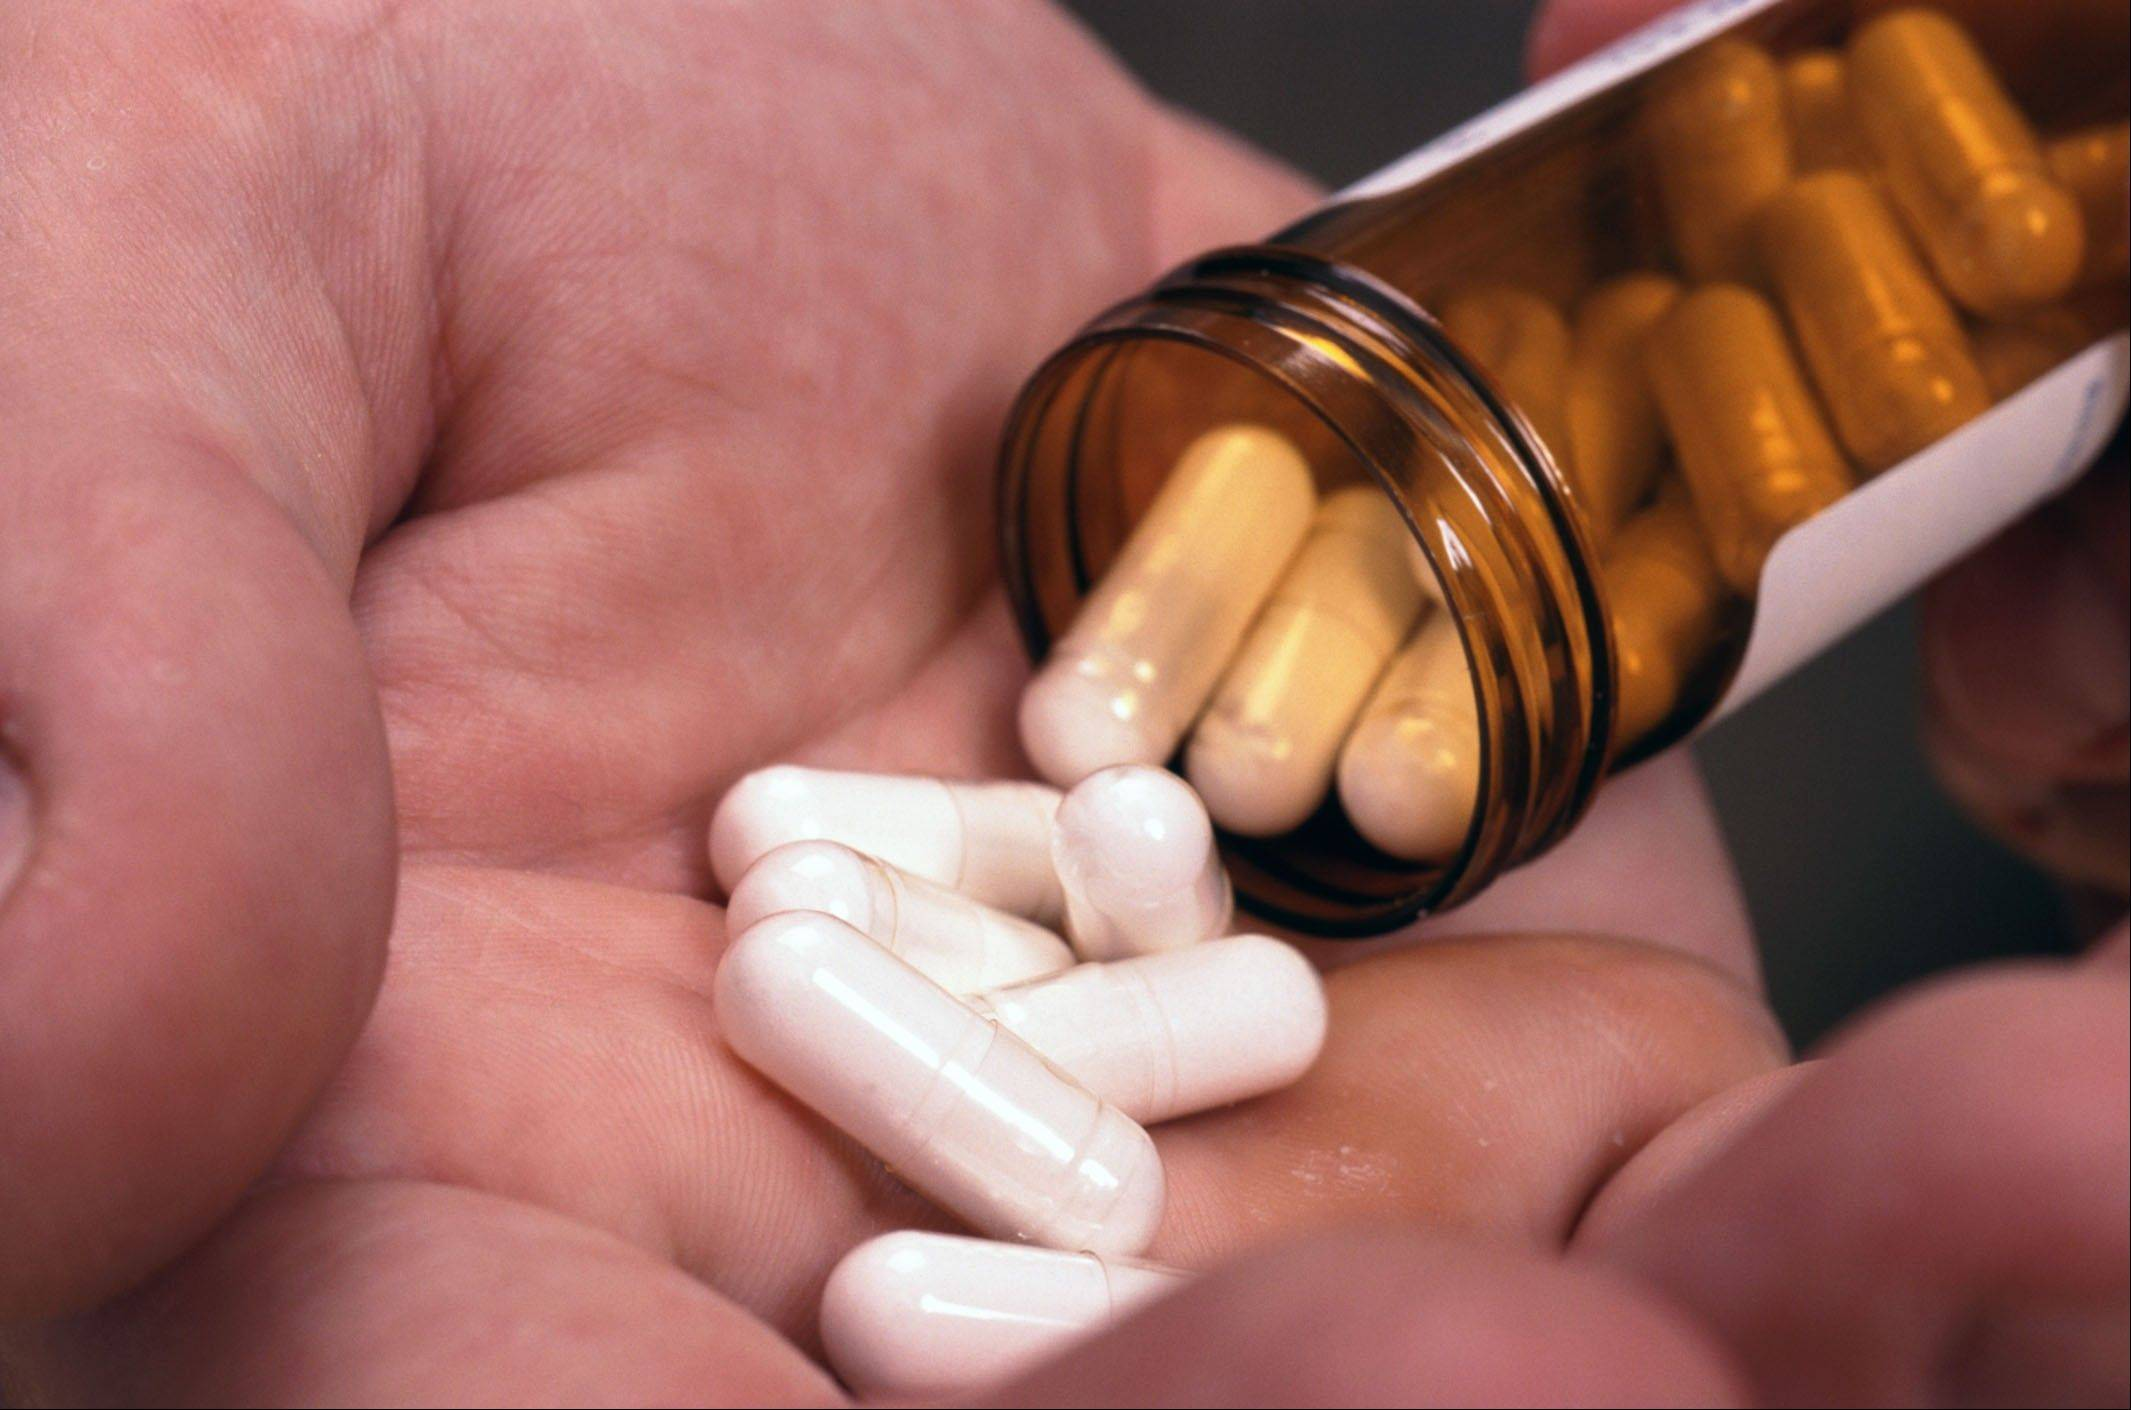 A new study suggests that antibiotics are being overused by doctors in the United States.